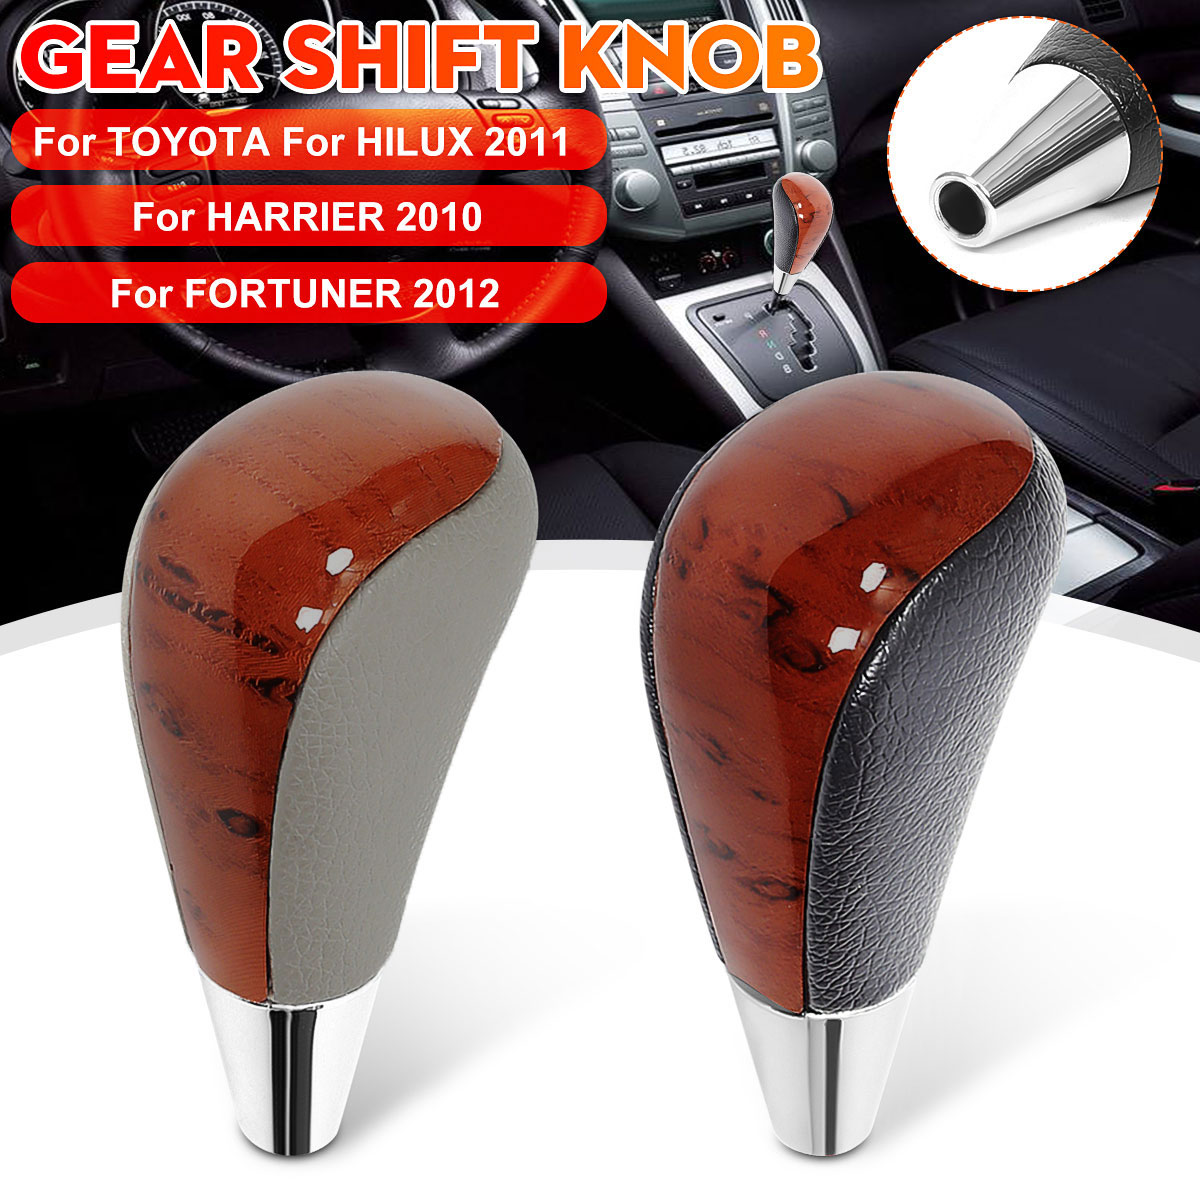 Leather Car AT Gear Shift Knob Lever Shifter Stick For Toyota for Hilux 2011 onward For Harrier 2010 onward|Gear Shift Knob| |  - title=